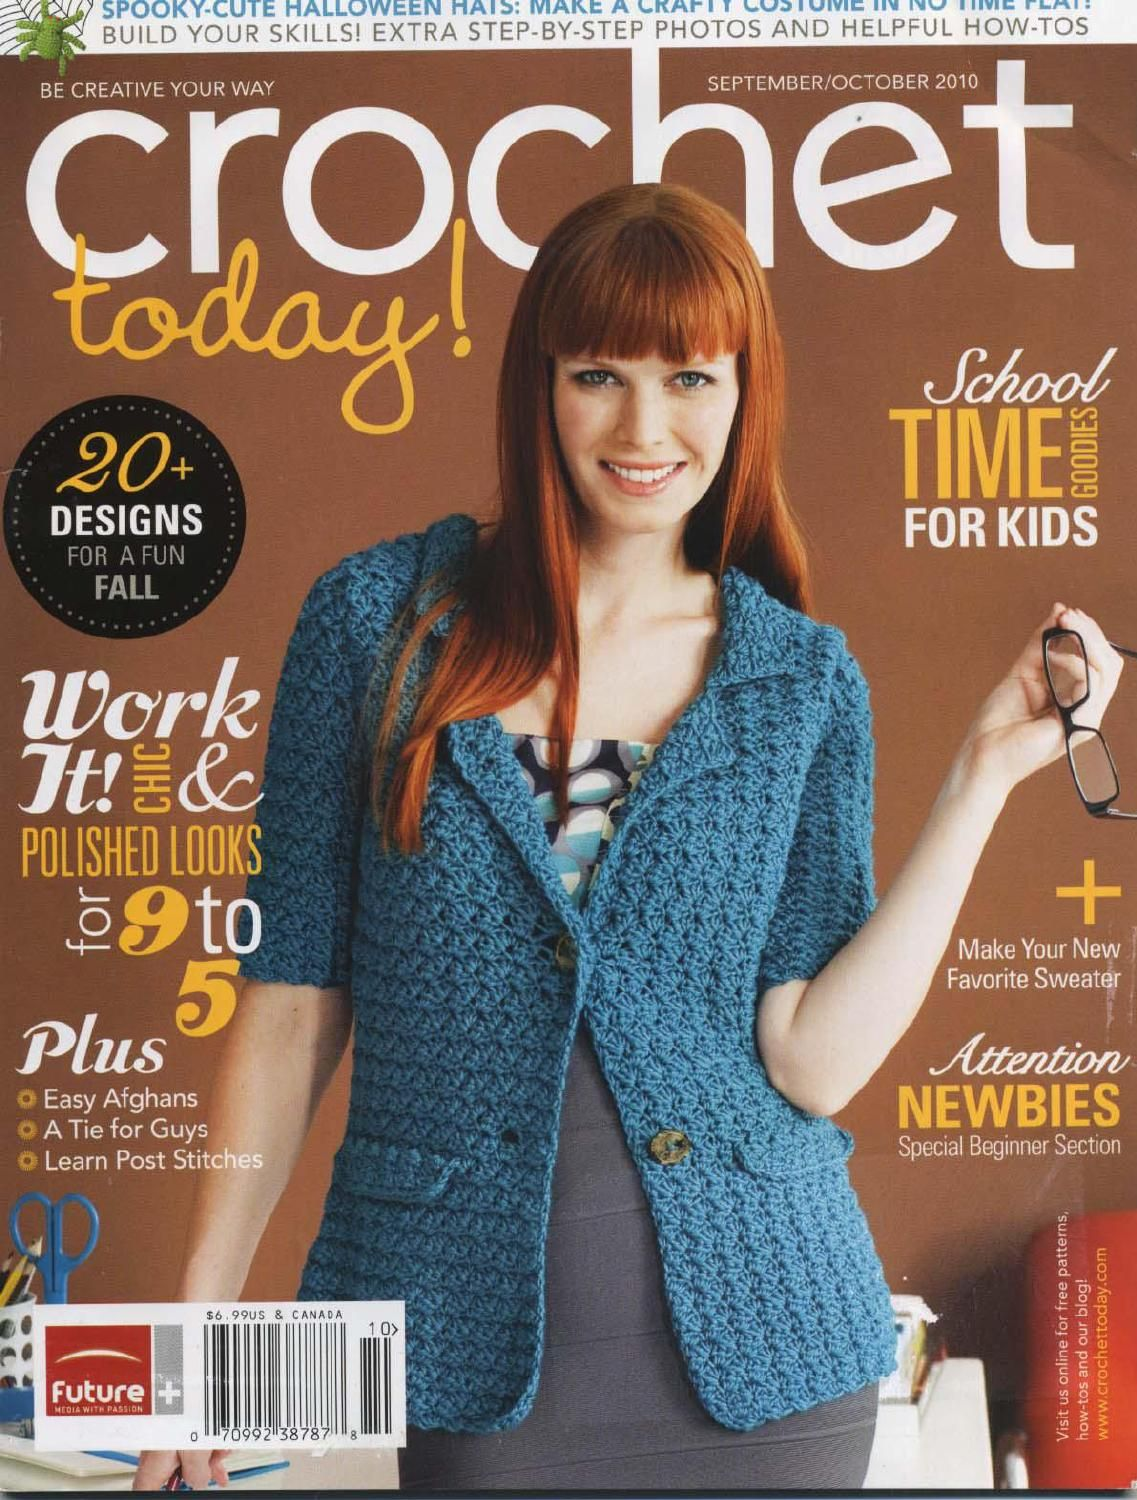 27 crochet today! sept oct 2010 | Knit/Crochet Magazines and Books ...